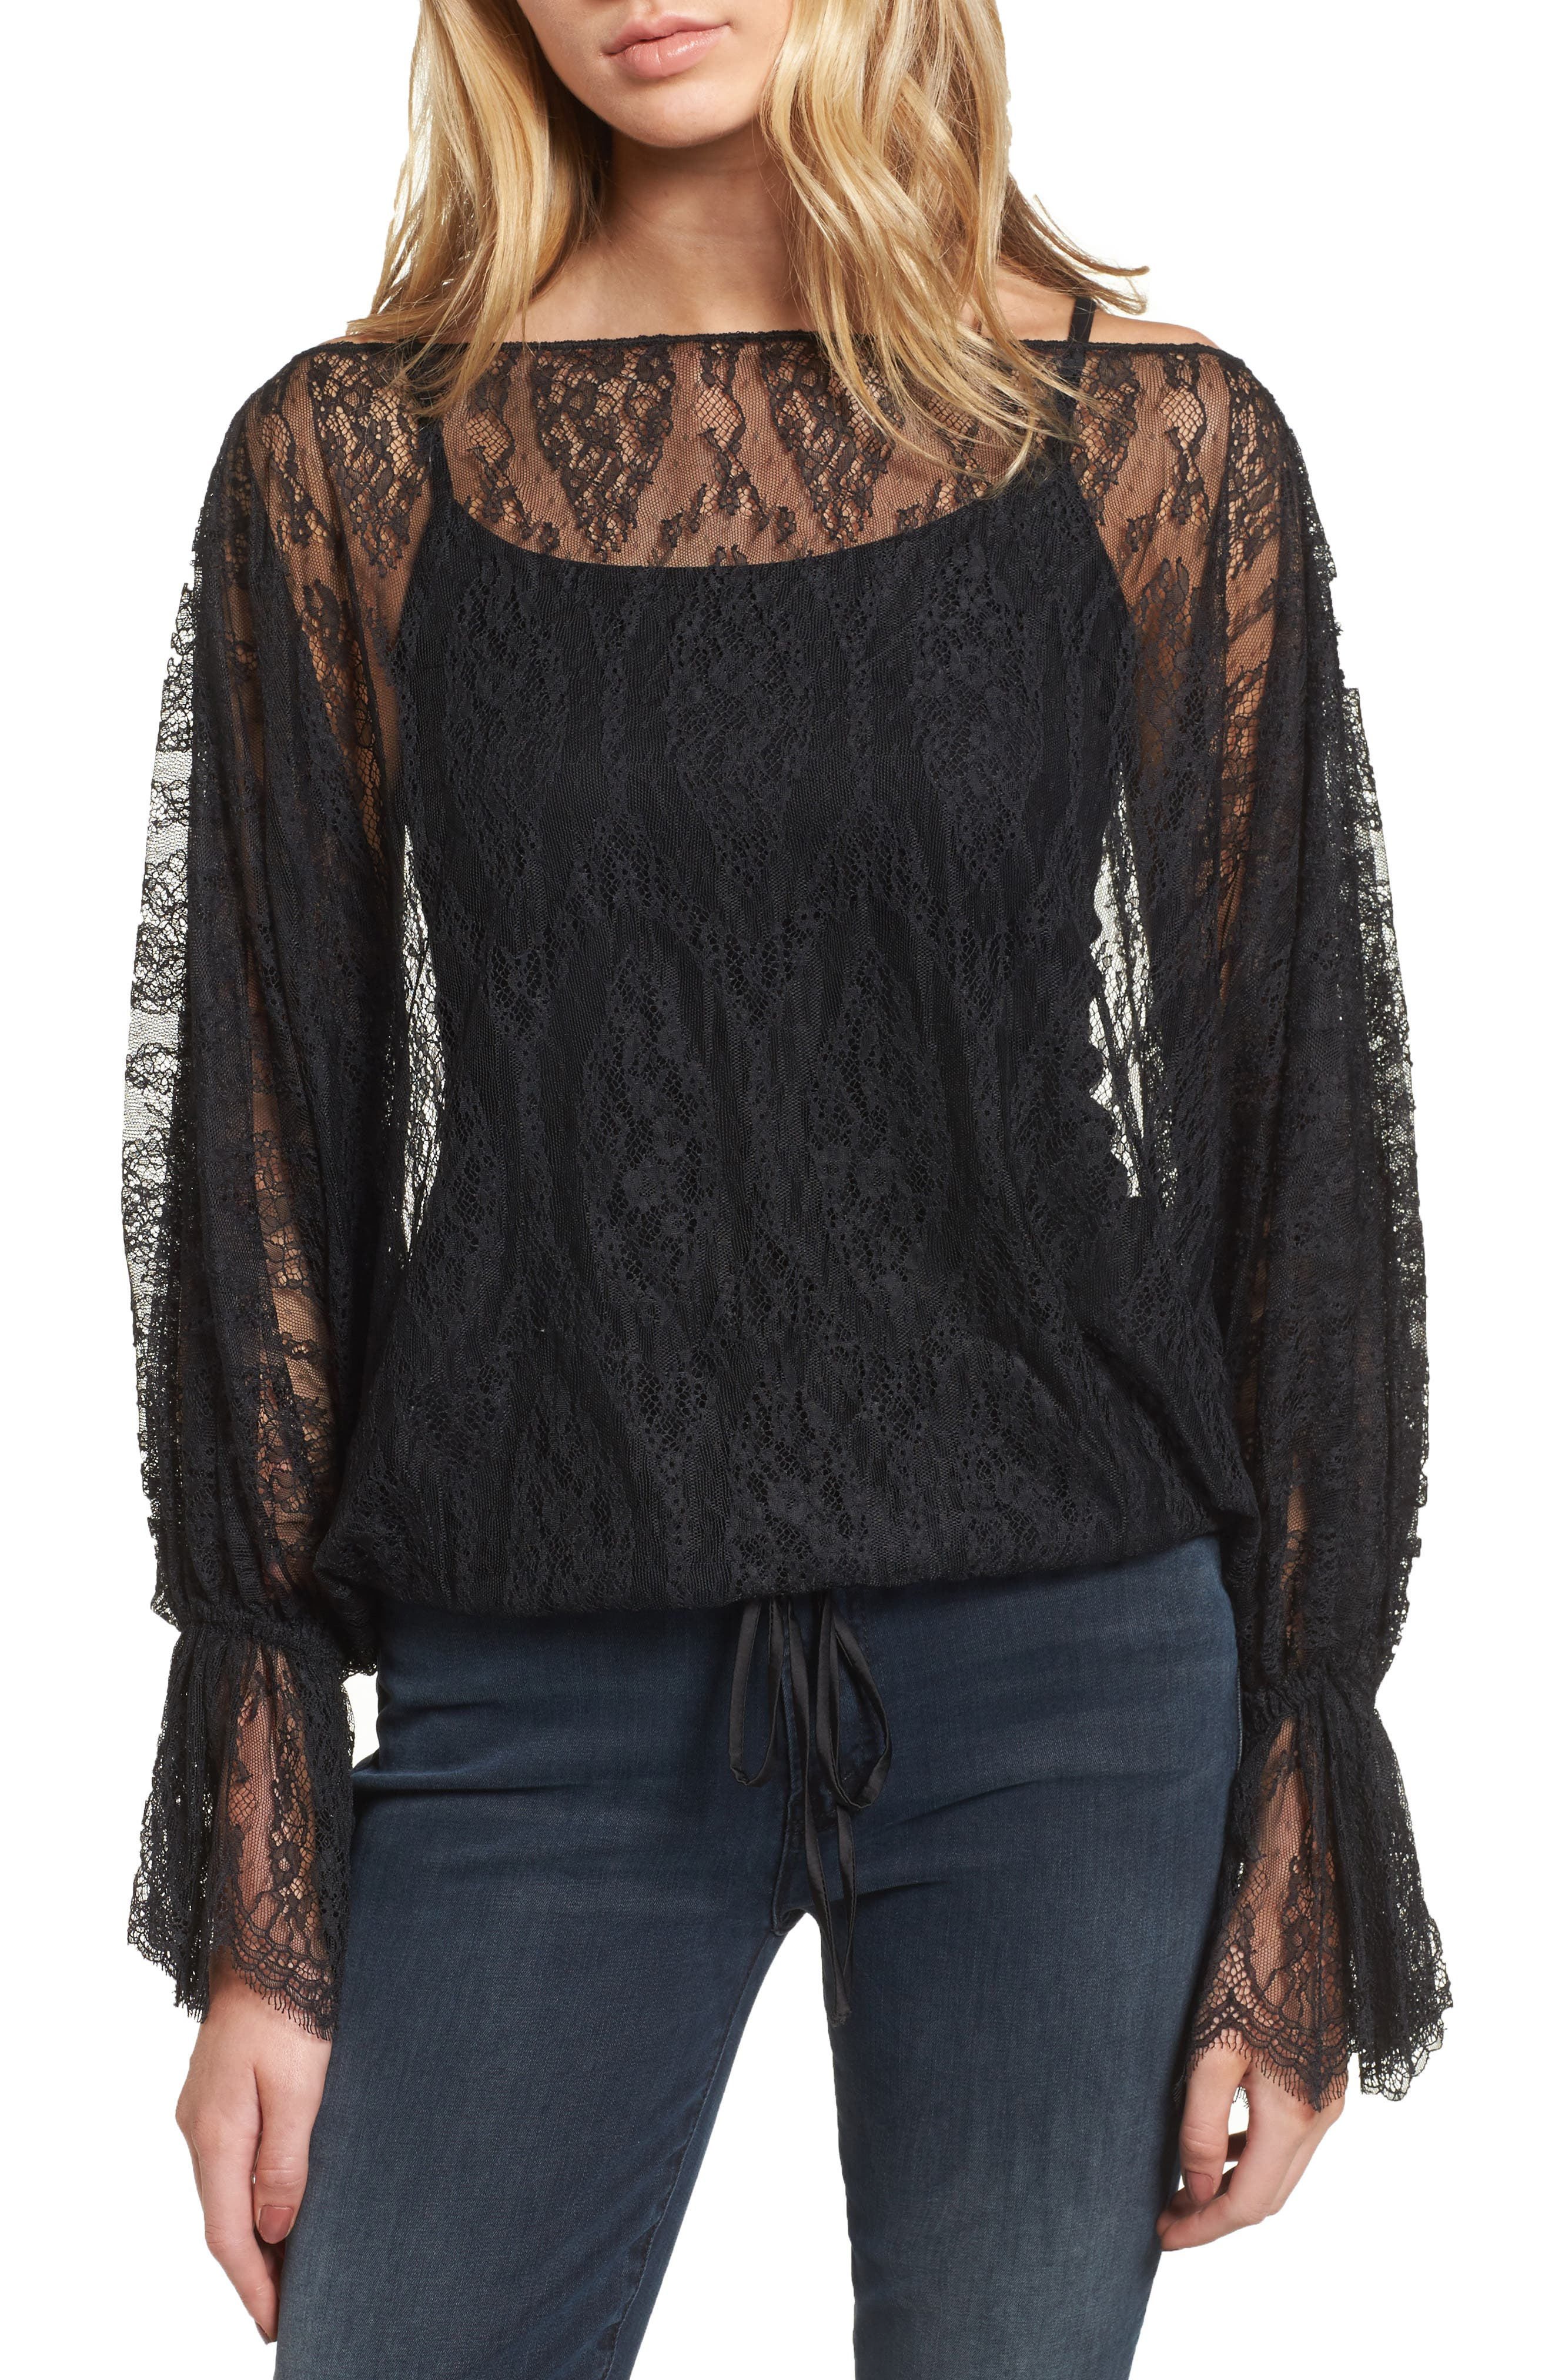 Main Image - Bailey 44 Bliss of Insanity Lace Top